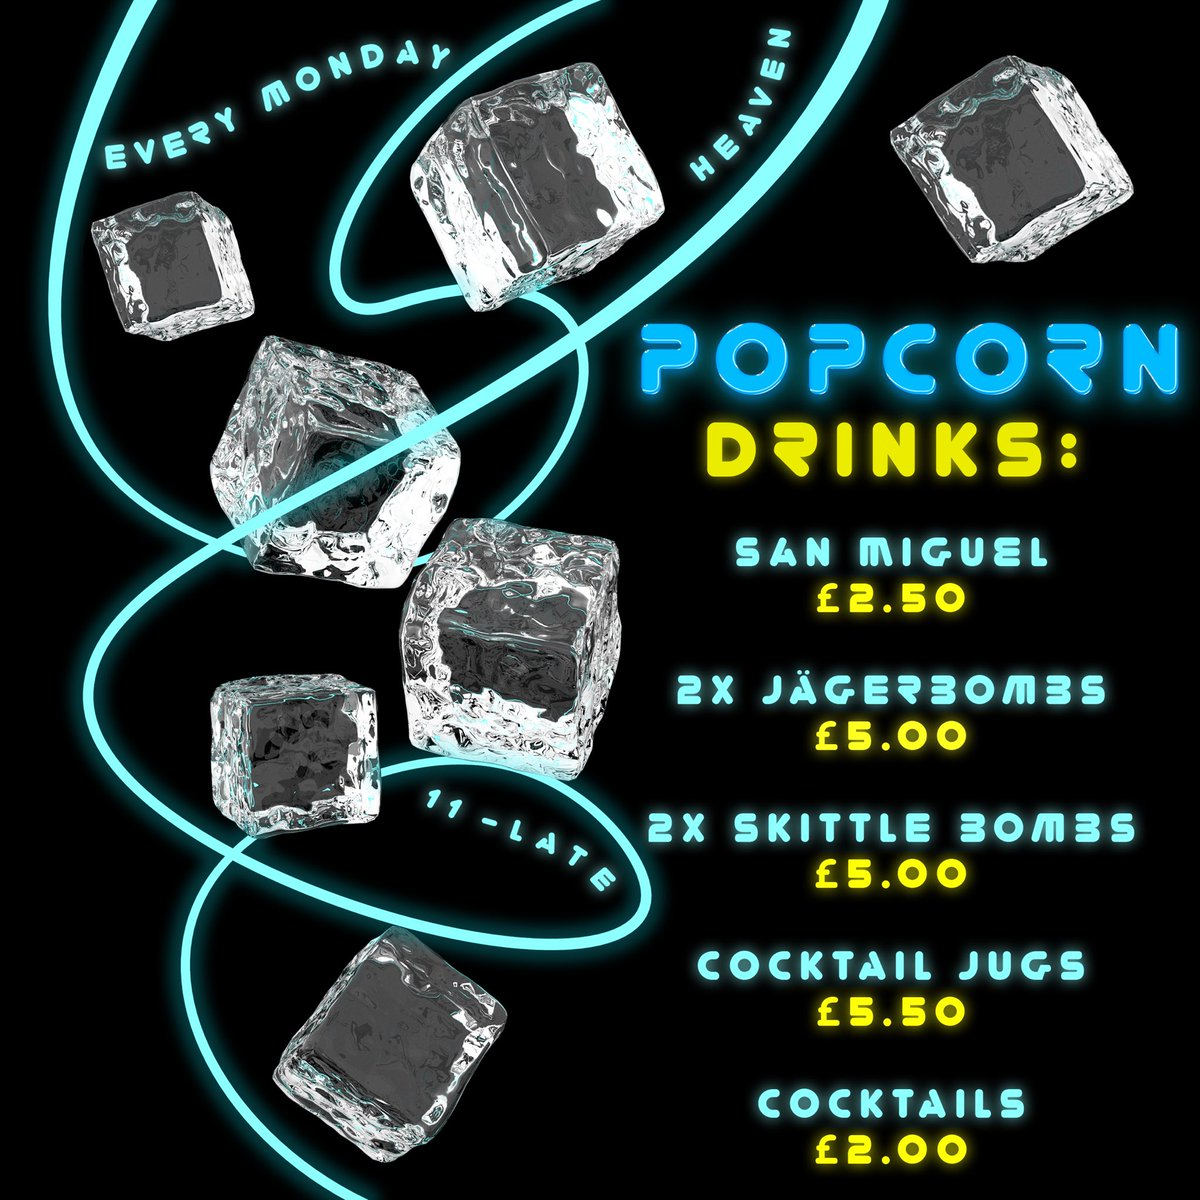 the best drink offers at @POPCORNatHEAVEN every Monday, taking the edge off the start of the week! 🍿🥤💦